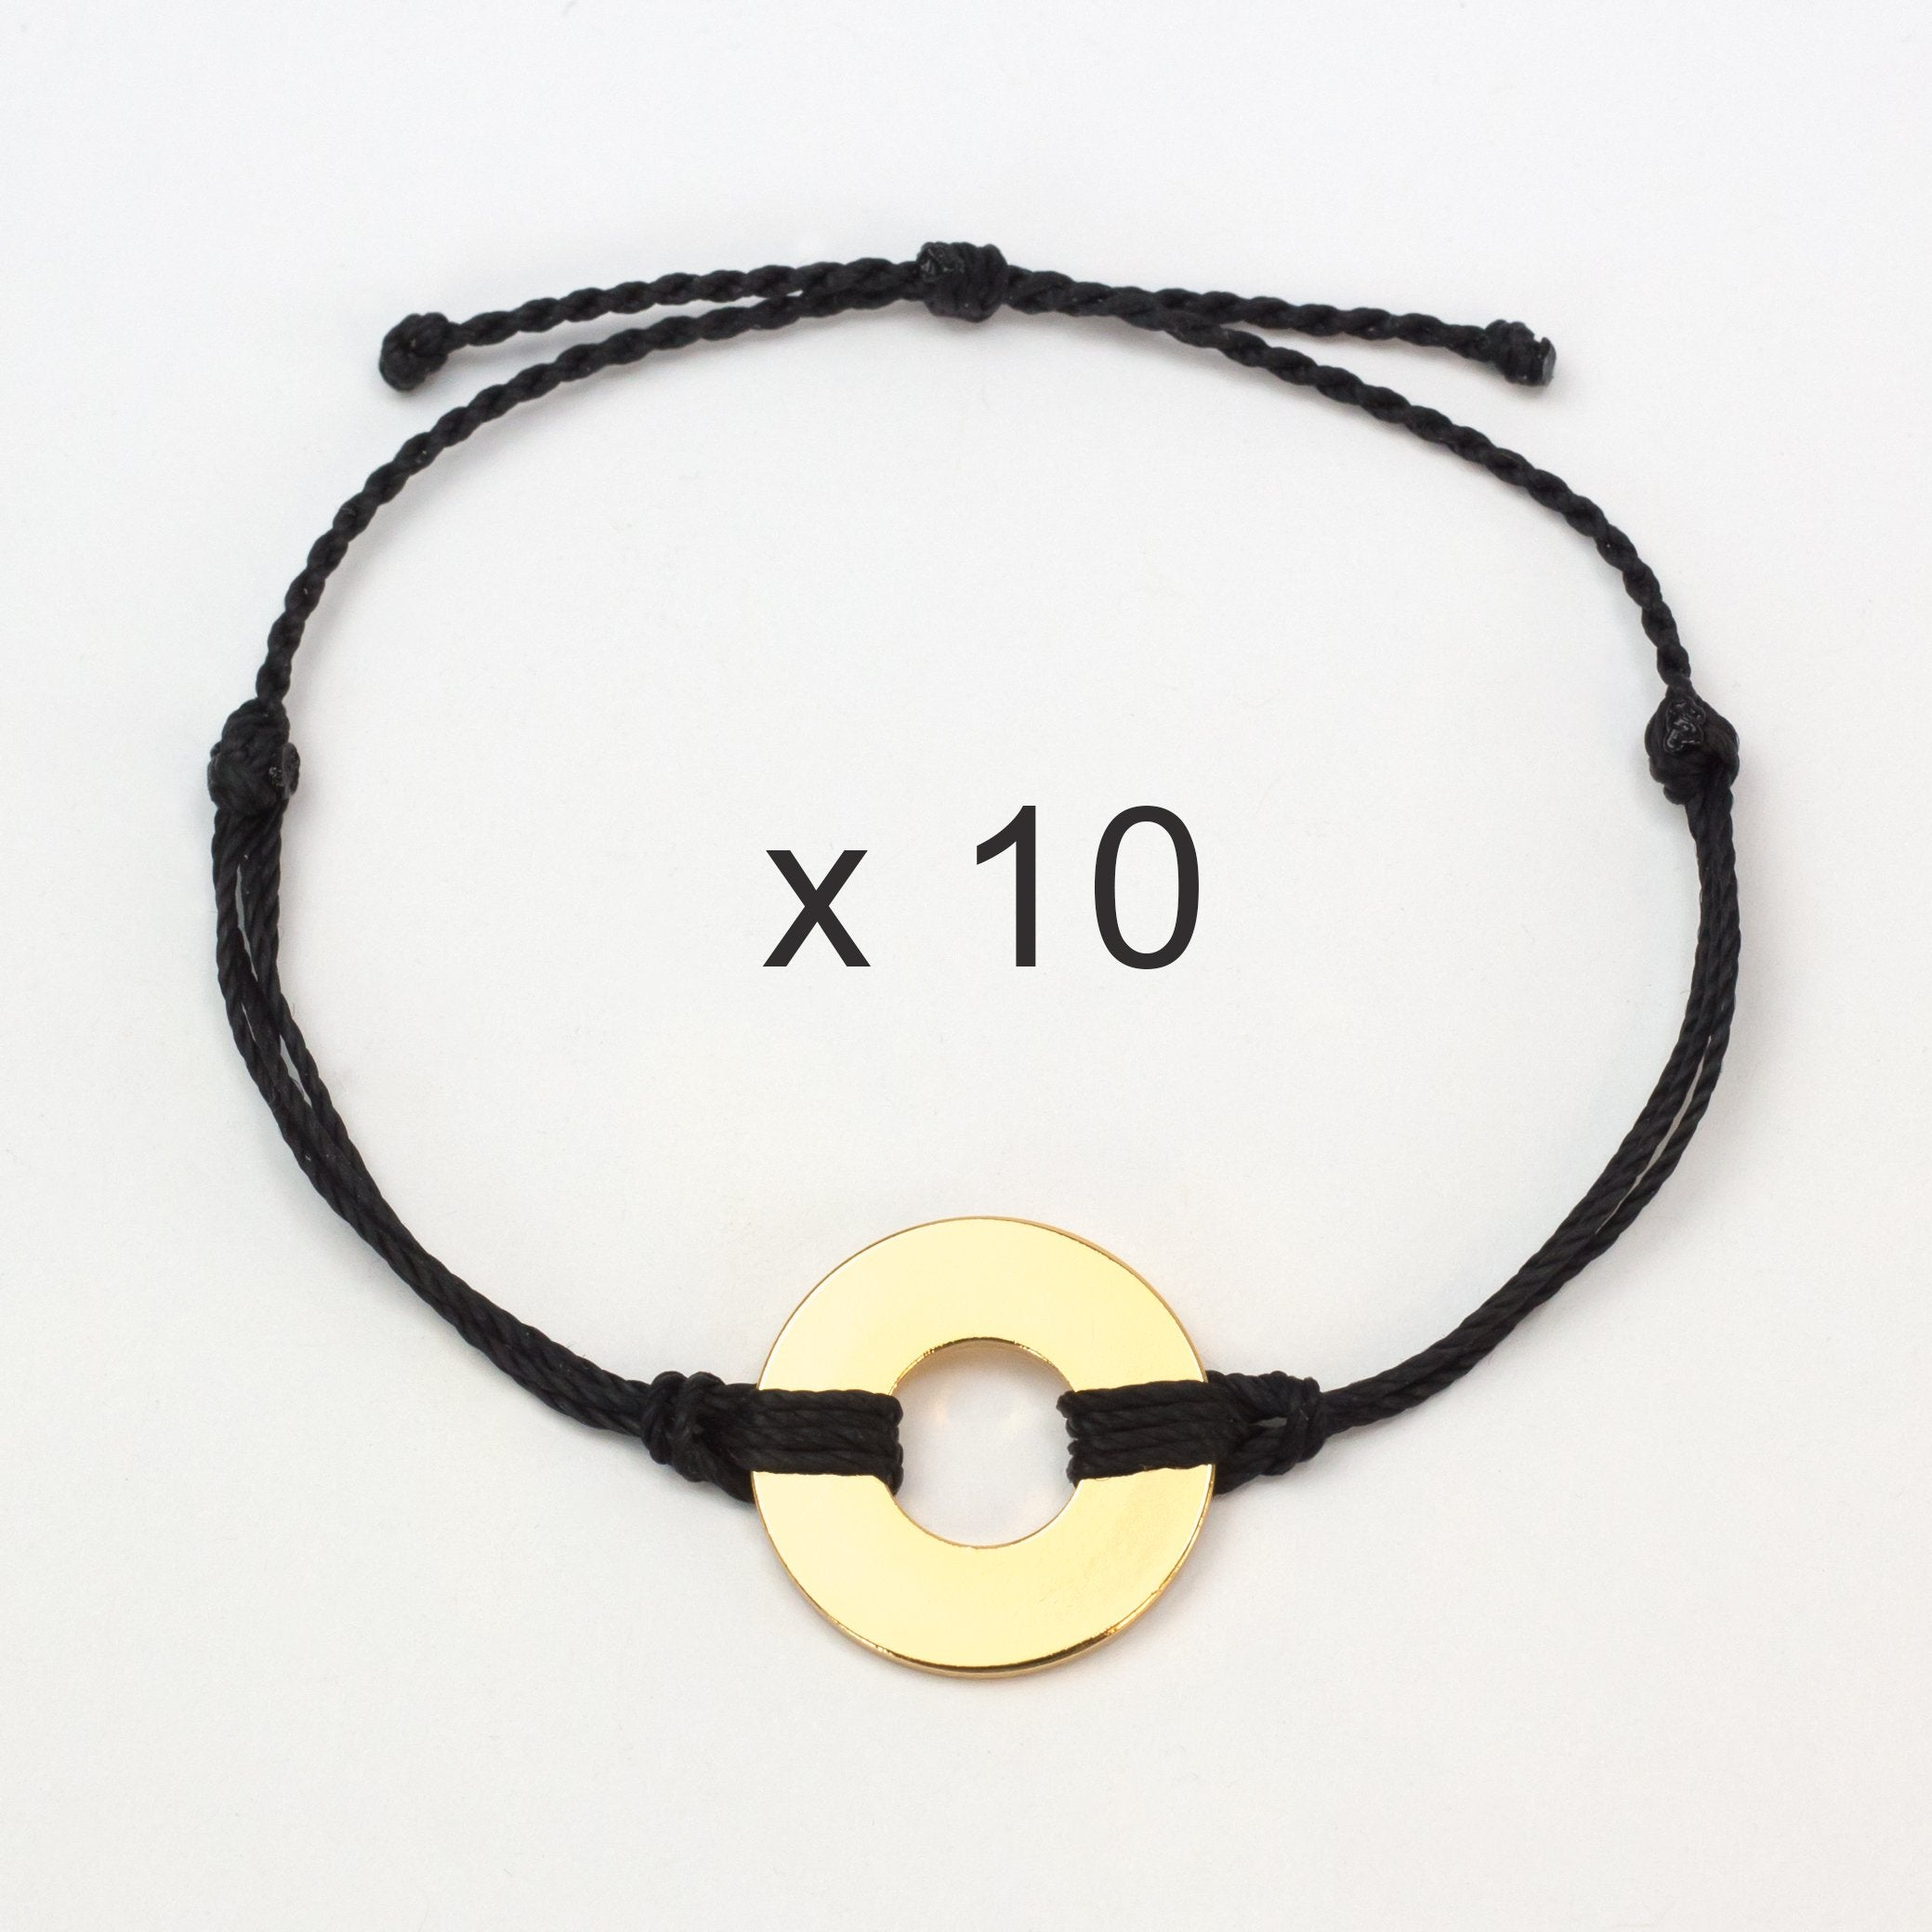 MyIntent Refill Twist Anklets set of 10 Black String with Gold Tokens